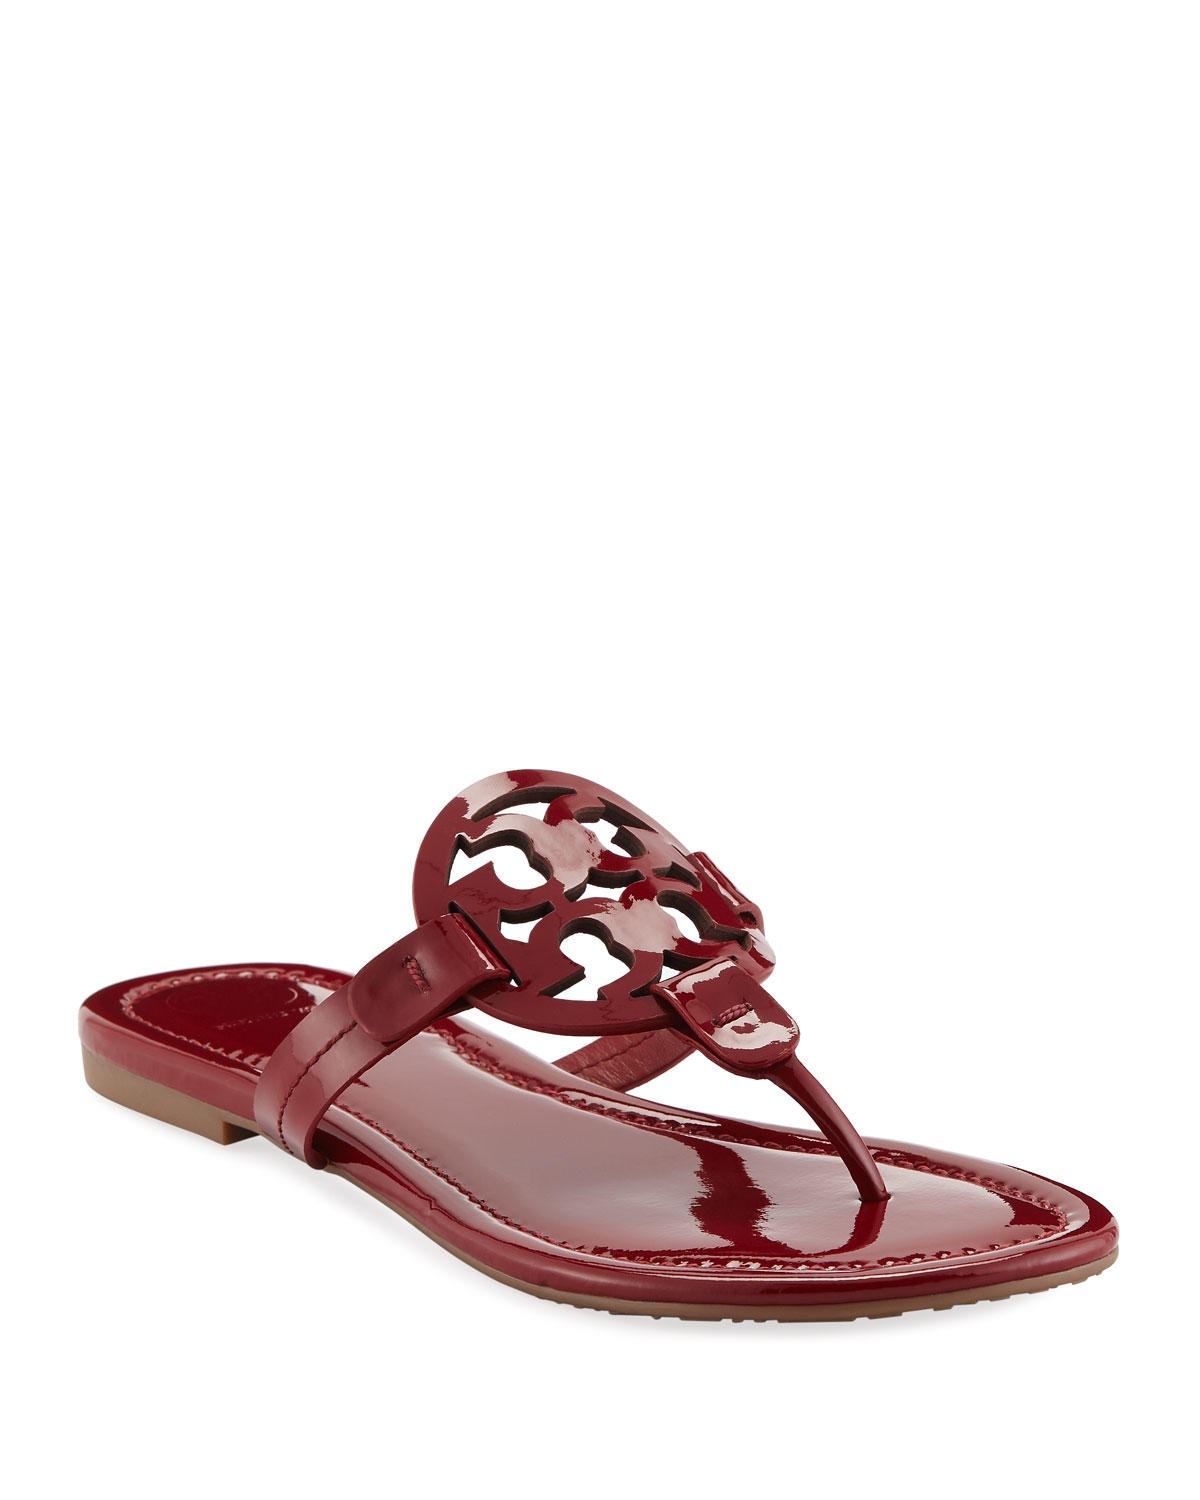 036fefc07 Tory Burch Miller Medallion Patent Leather Flat Thong Sandals ...